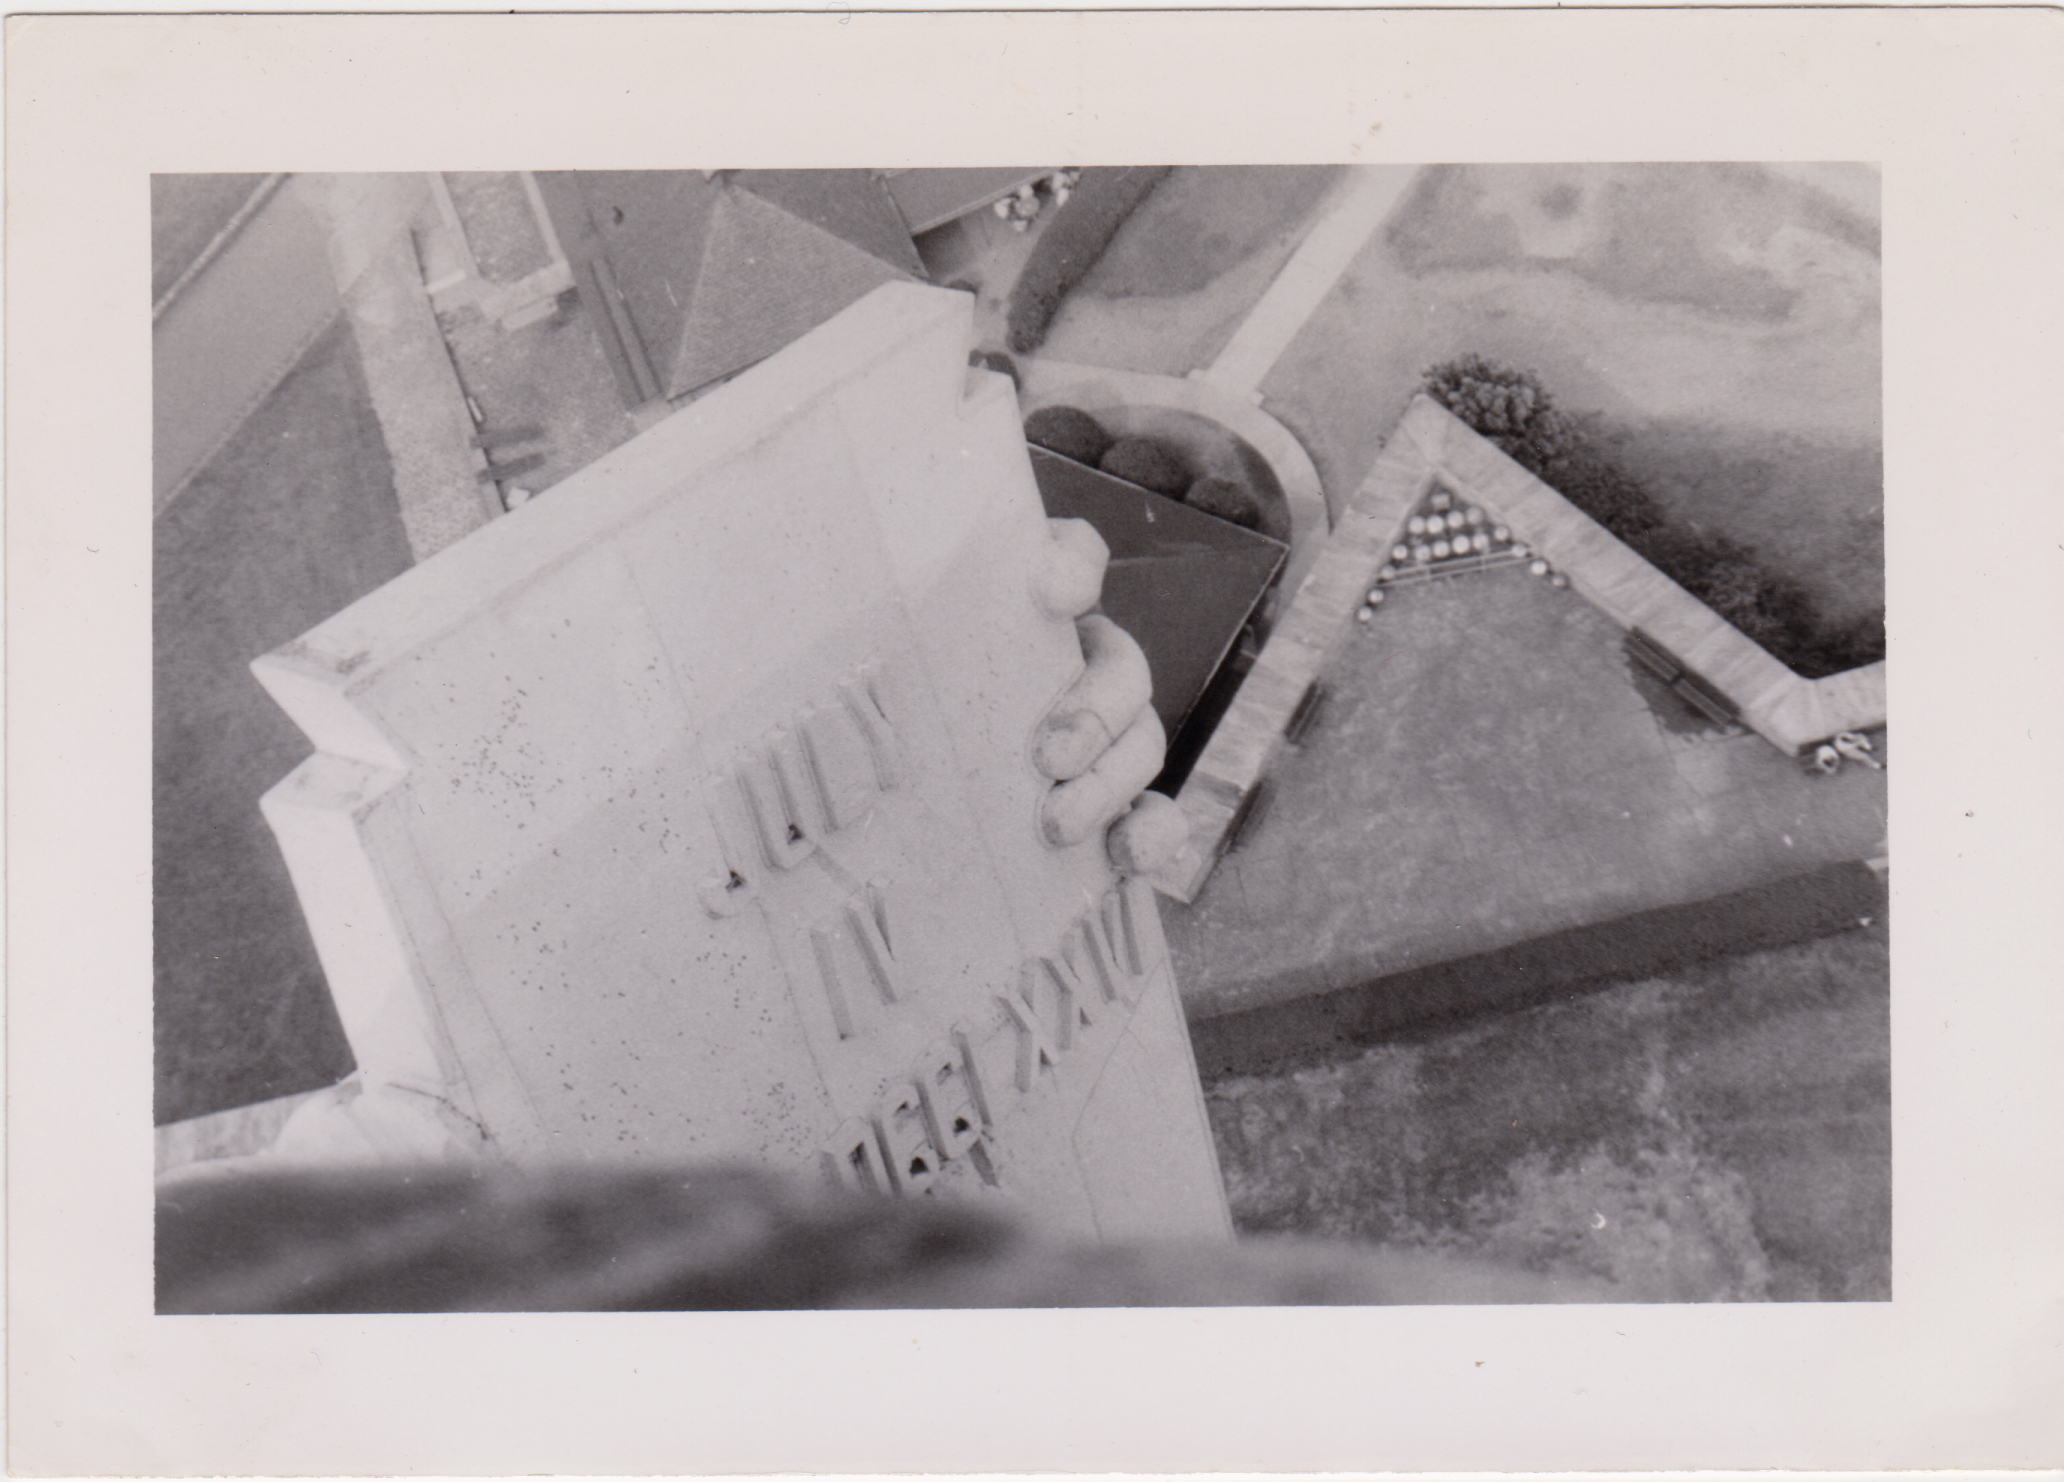 Snapshot from the collection of Robert E. Jackson